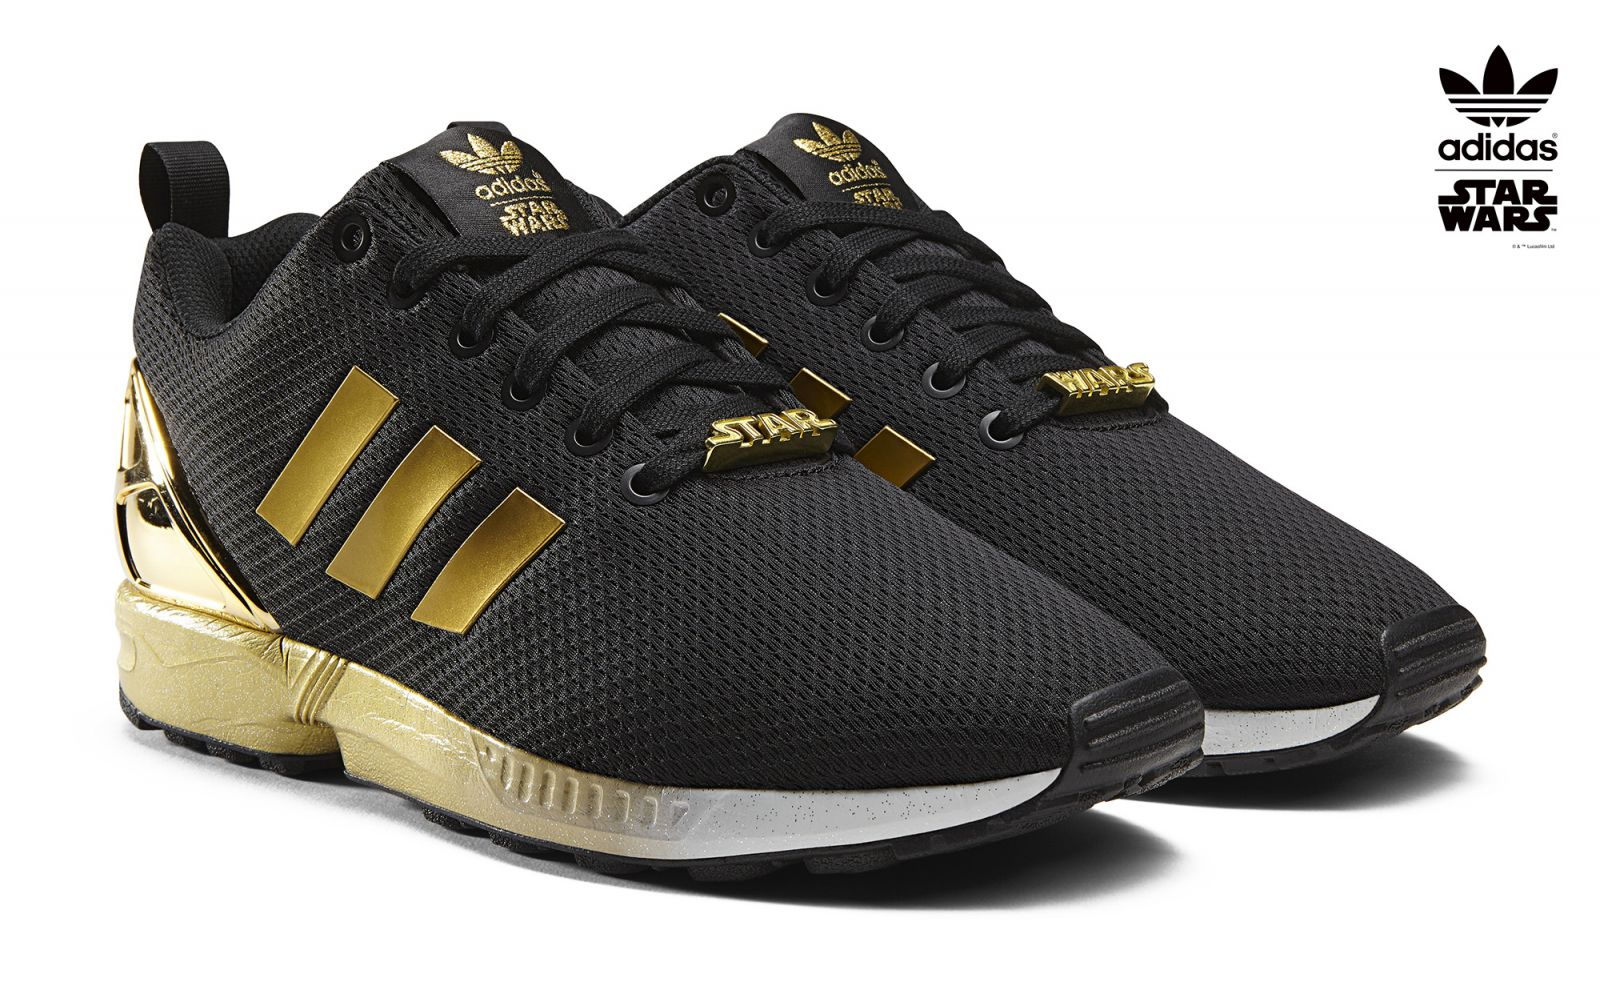 2ffcc7503ac70 Adidas Zx Flux Black Gold wallbank-lfc.co.uk